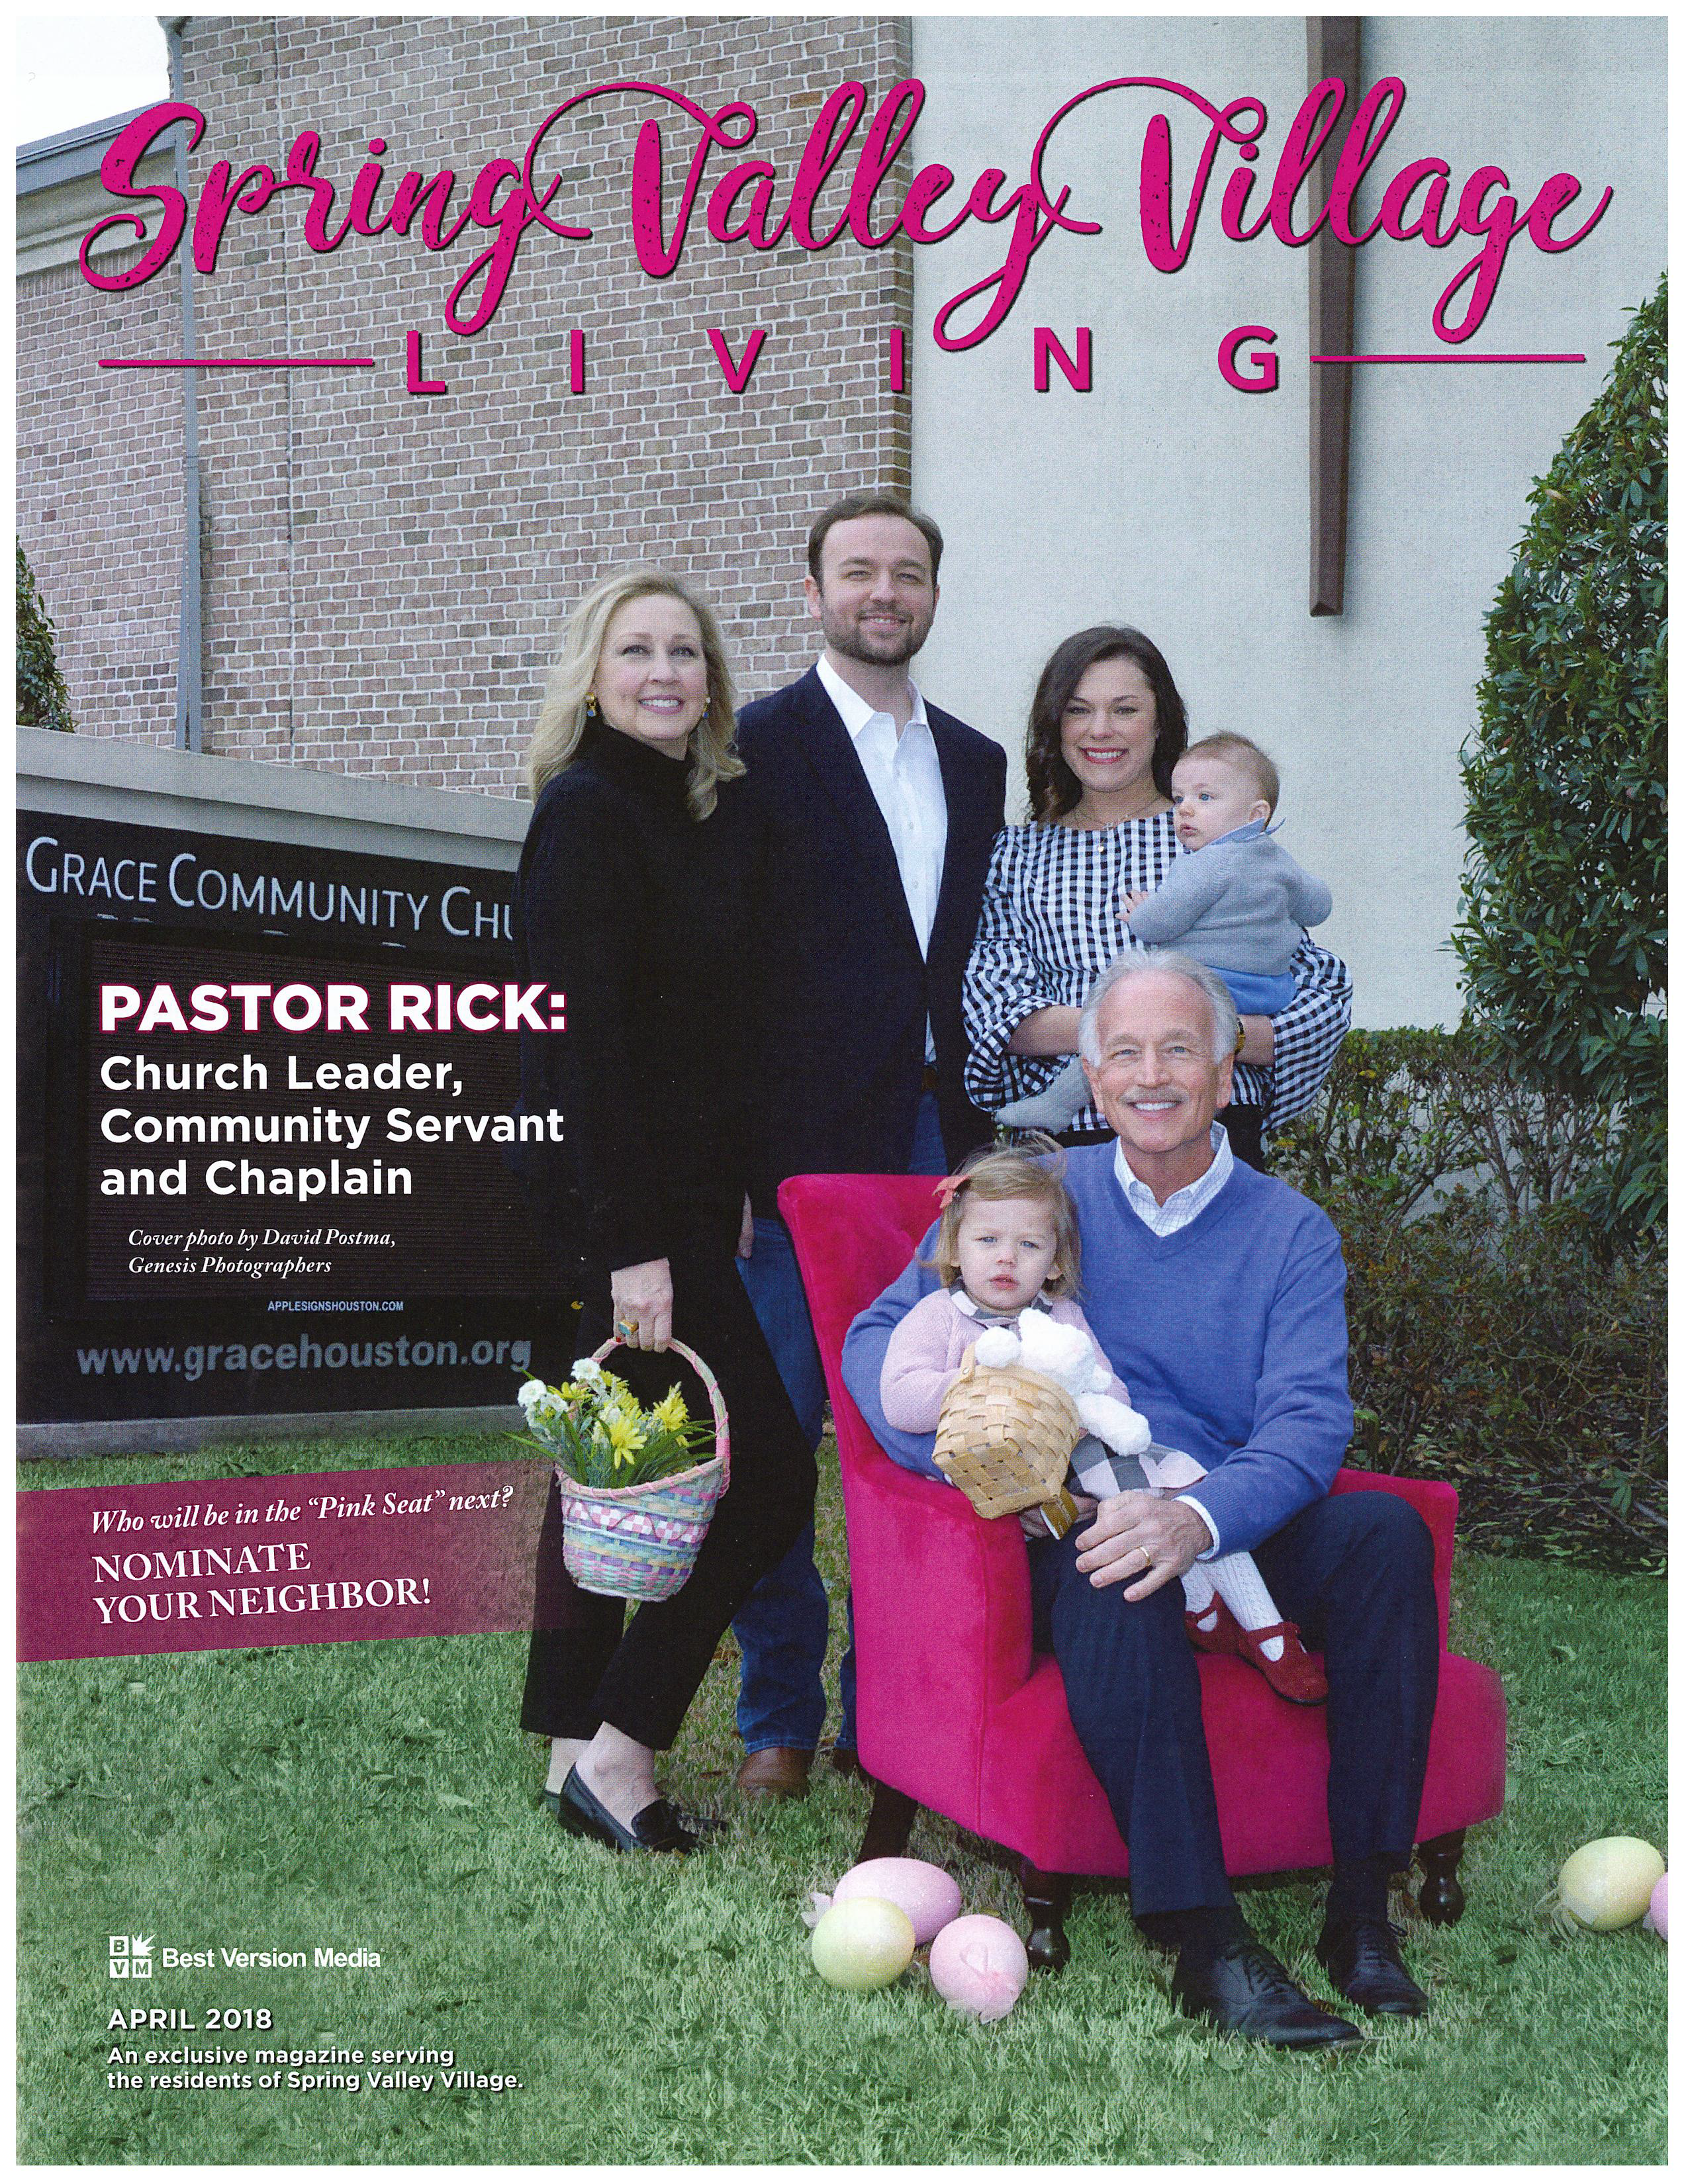 Spring Valley Village Magazine - Pastor Rick article ONLY-1.png